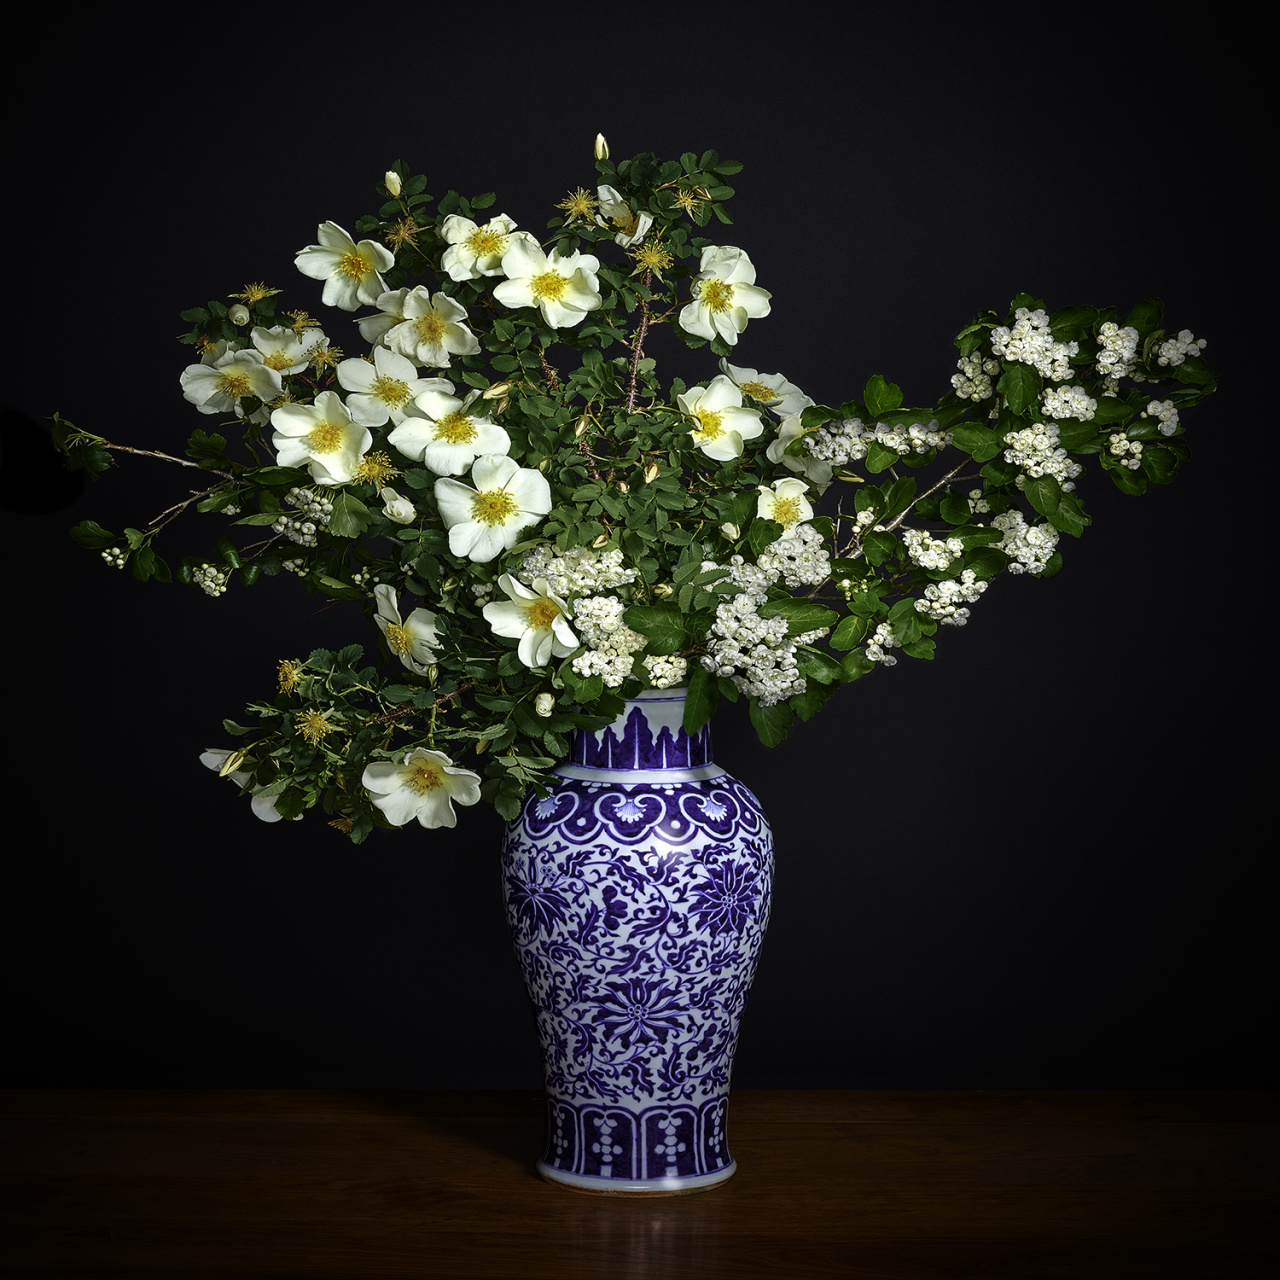 T.M. Glass, White Hawthorne White Shrub Rose in a Blue and White Chinese Vase, 2018